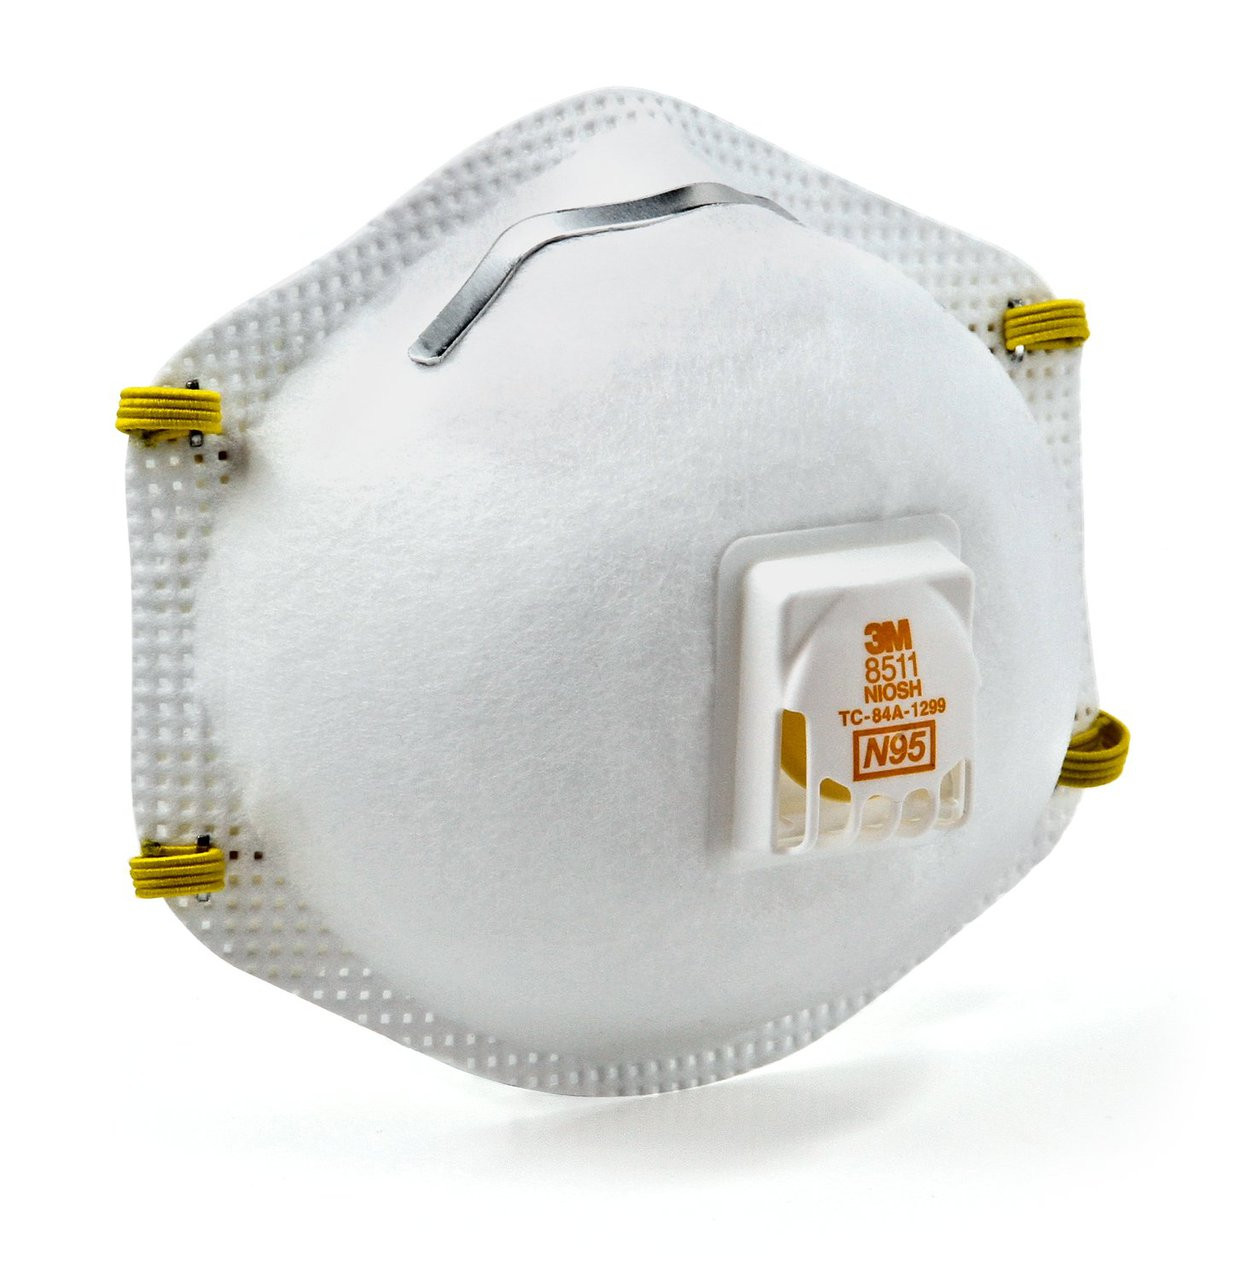 3M 8210V N95 Exhalation Valve Disposable Respirator Masks, 10/Box ...